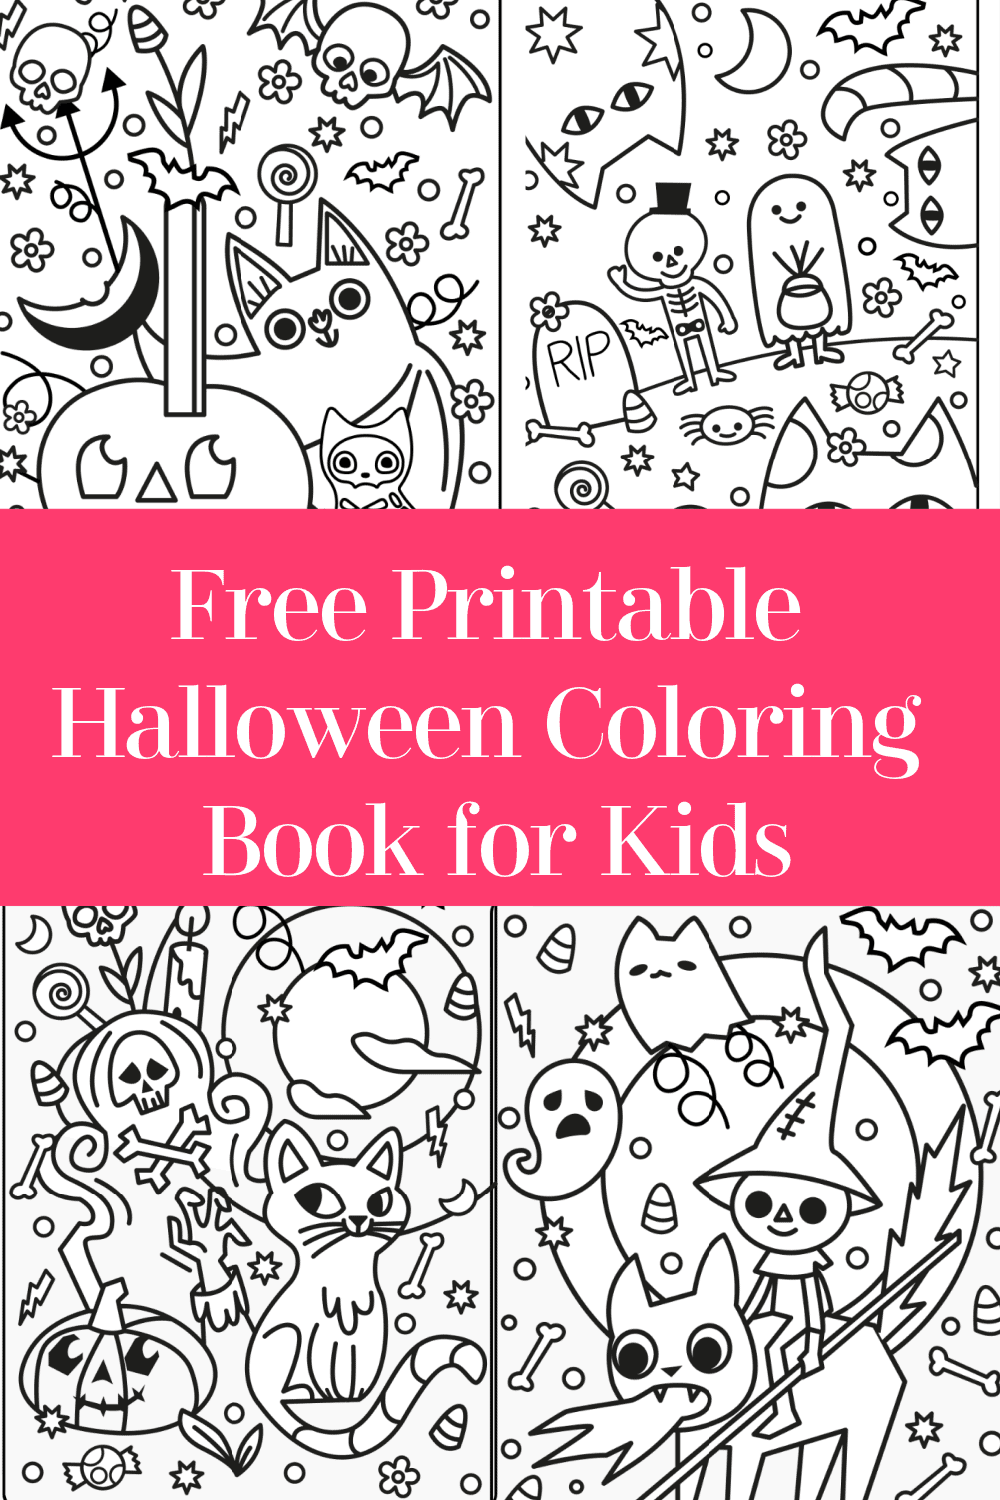 Need an easy way to keep the kids occupied? I made this fun little Halloween coloring book for kids! It's totally free, no strings attached. Just click the photo (or here) to download it.